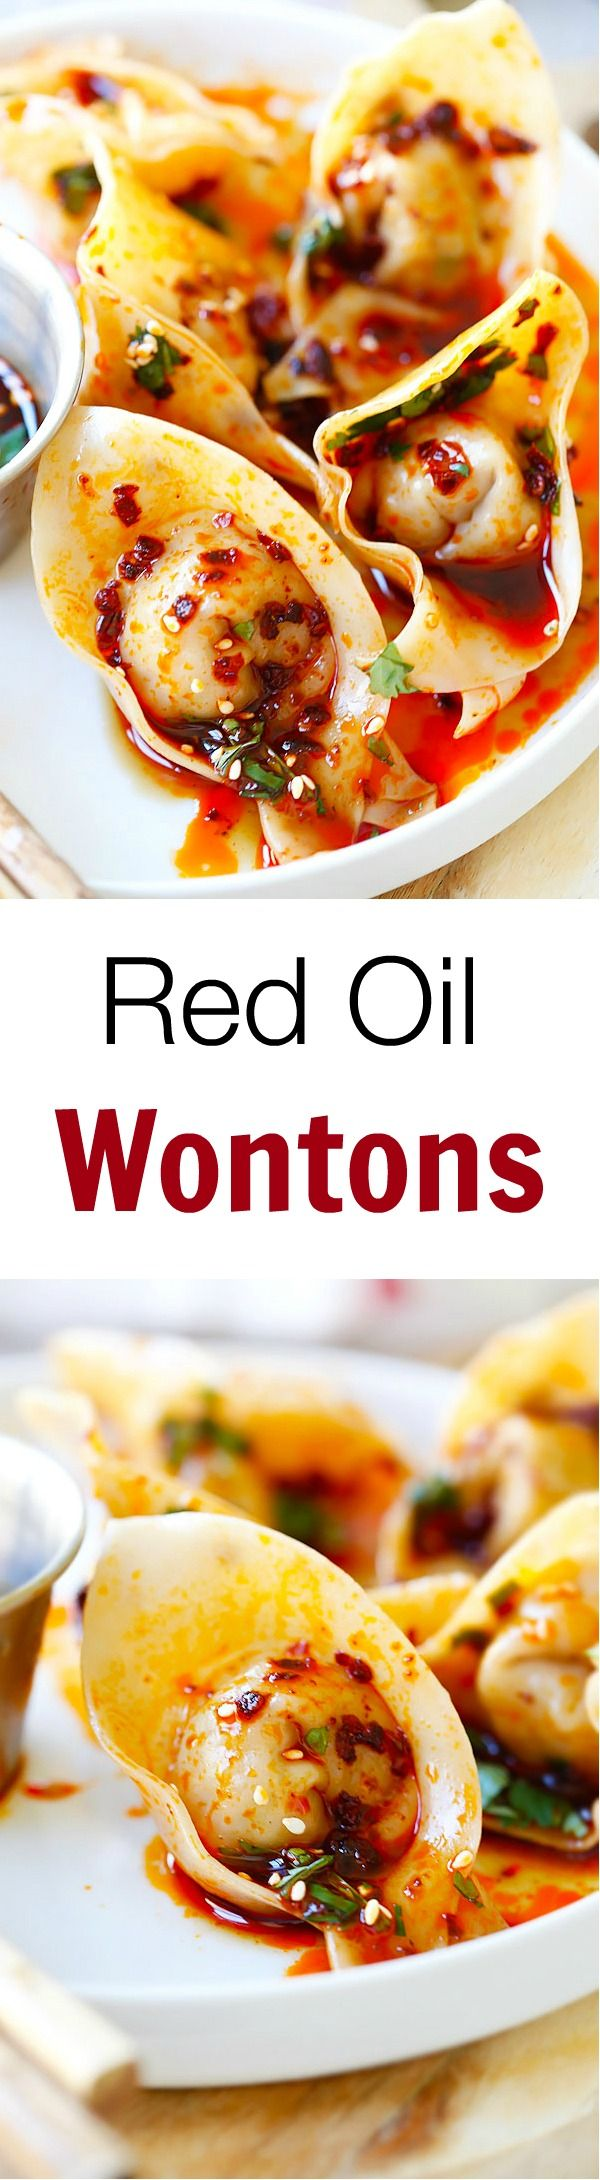 Red Oil Wontons – mouthwatering spicy wontons in Sichuan red oil and black vinegar sauce, SOOOO GOOD!!! | rasamalaysia.com